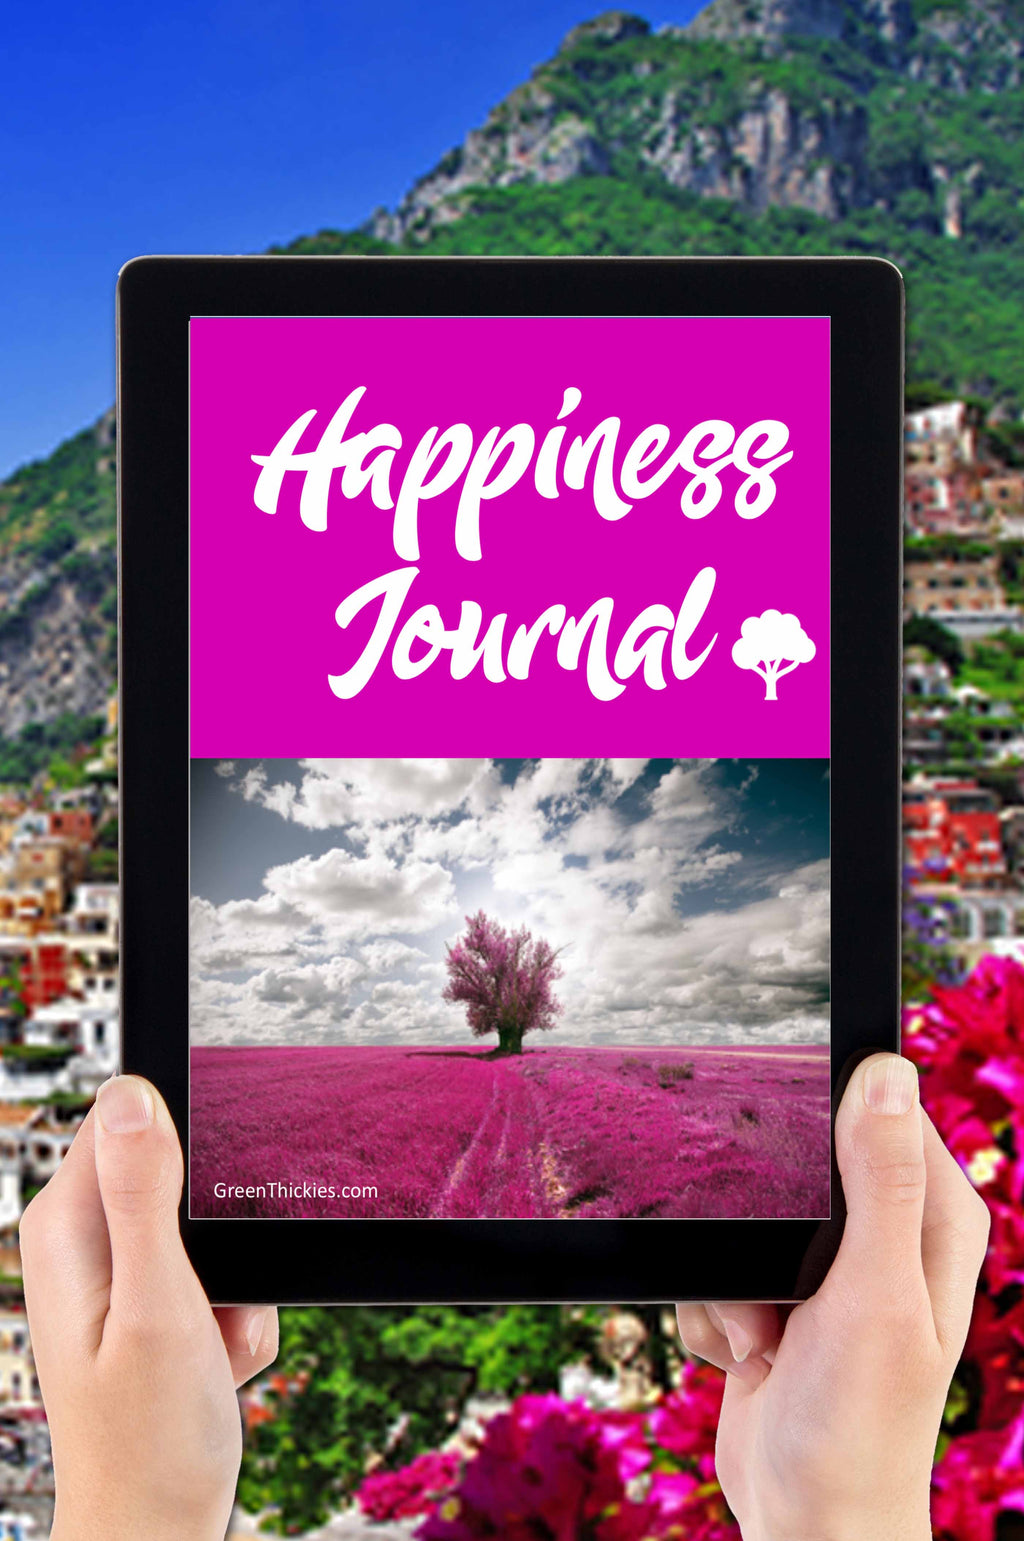 Happiness Journal 2019: 161 Pages (Page Per Day for the remainder of the year)